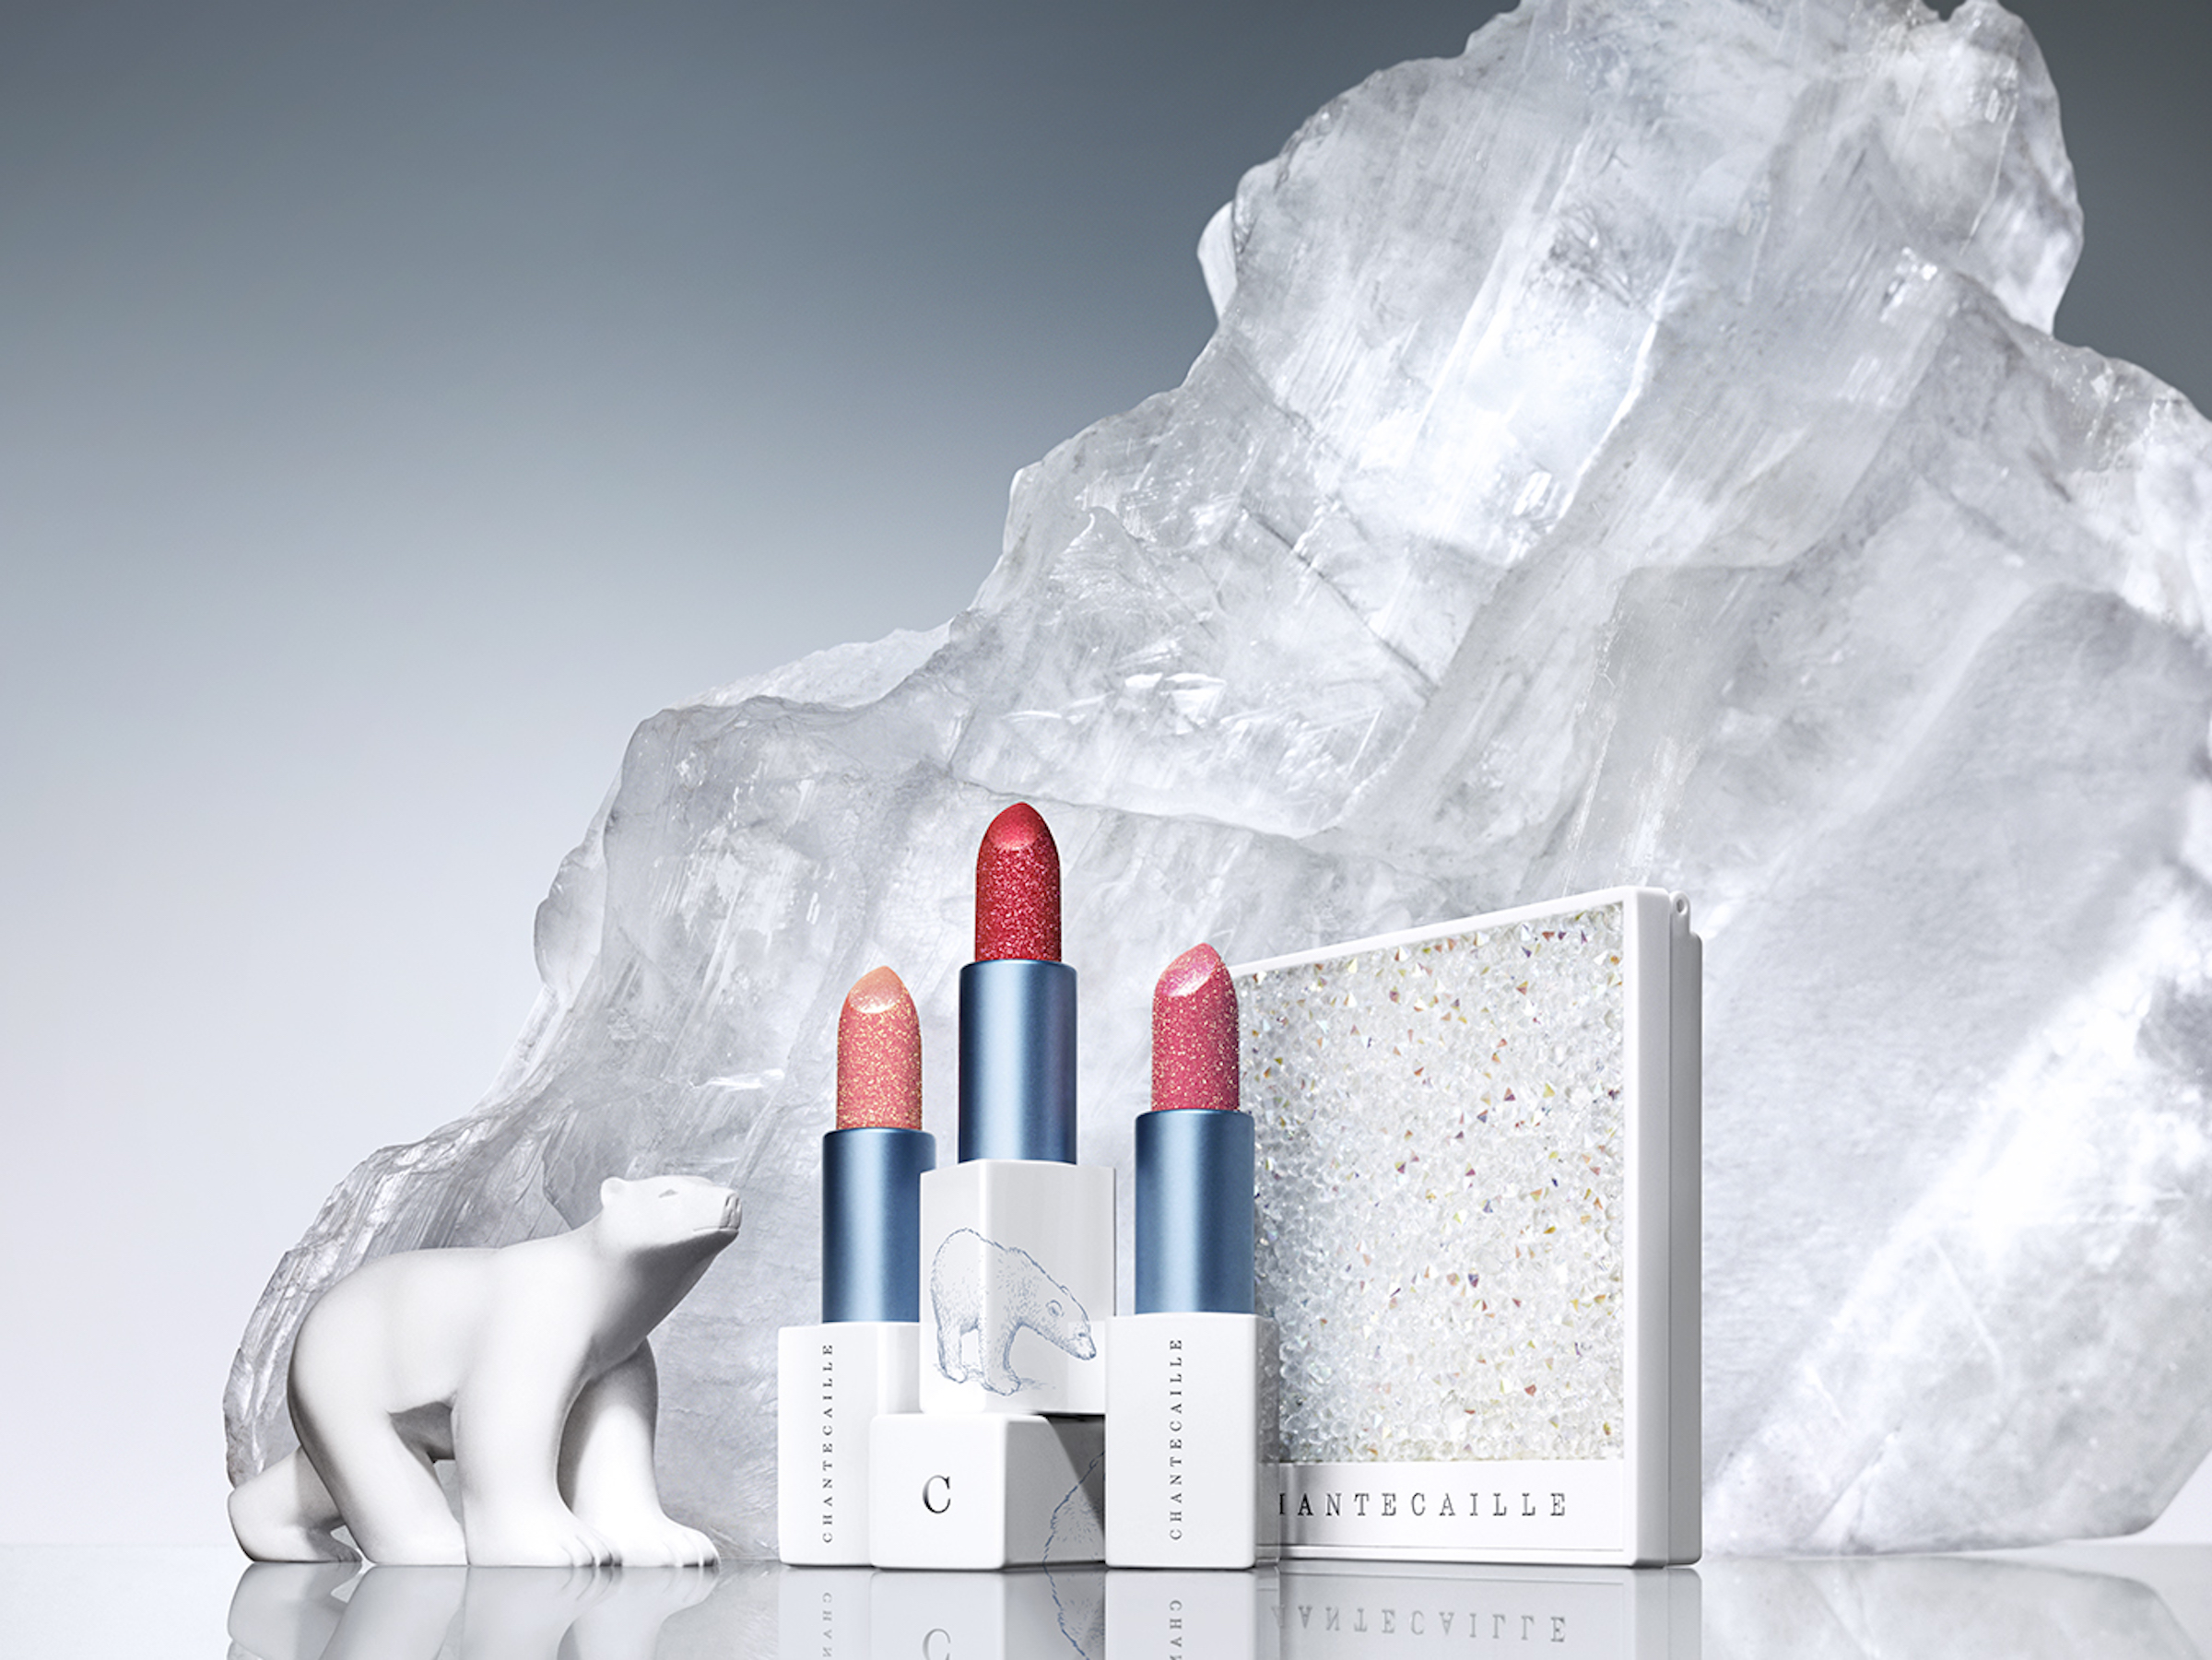 Why Chantecaille is the beauty brand that should be on your radar